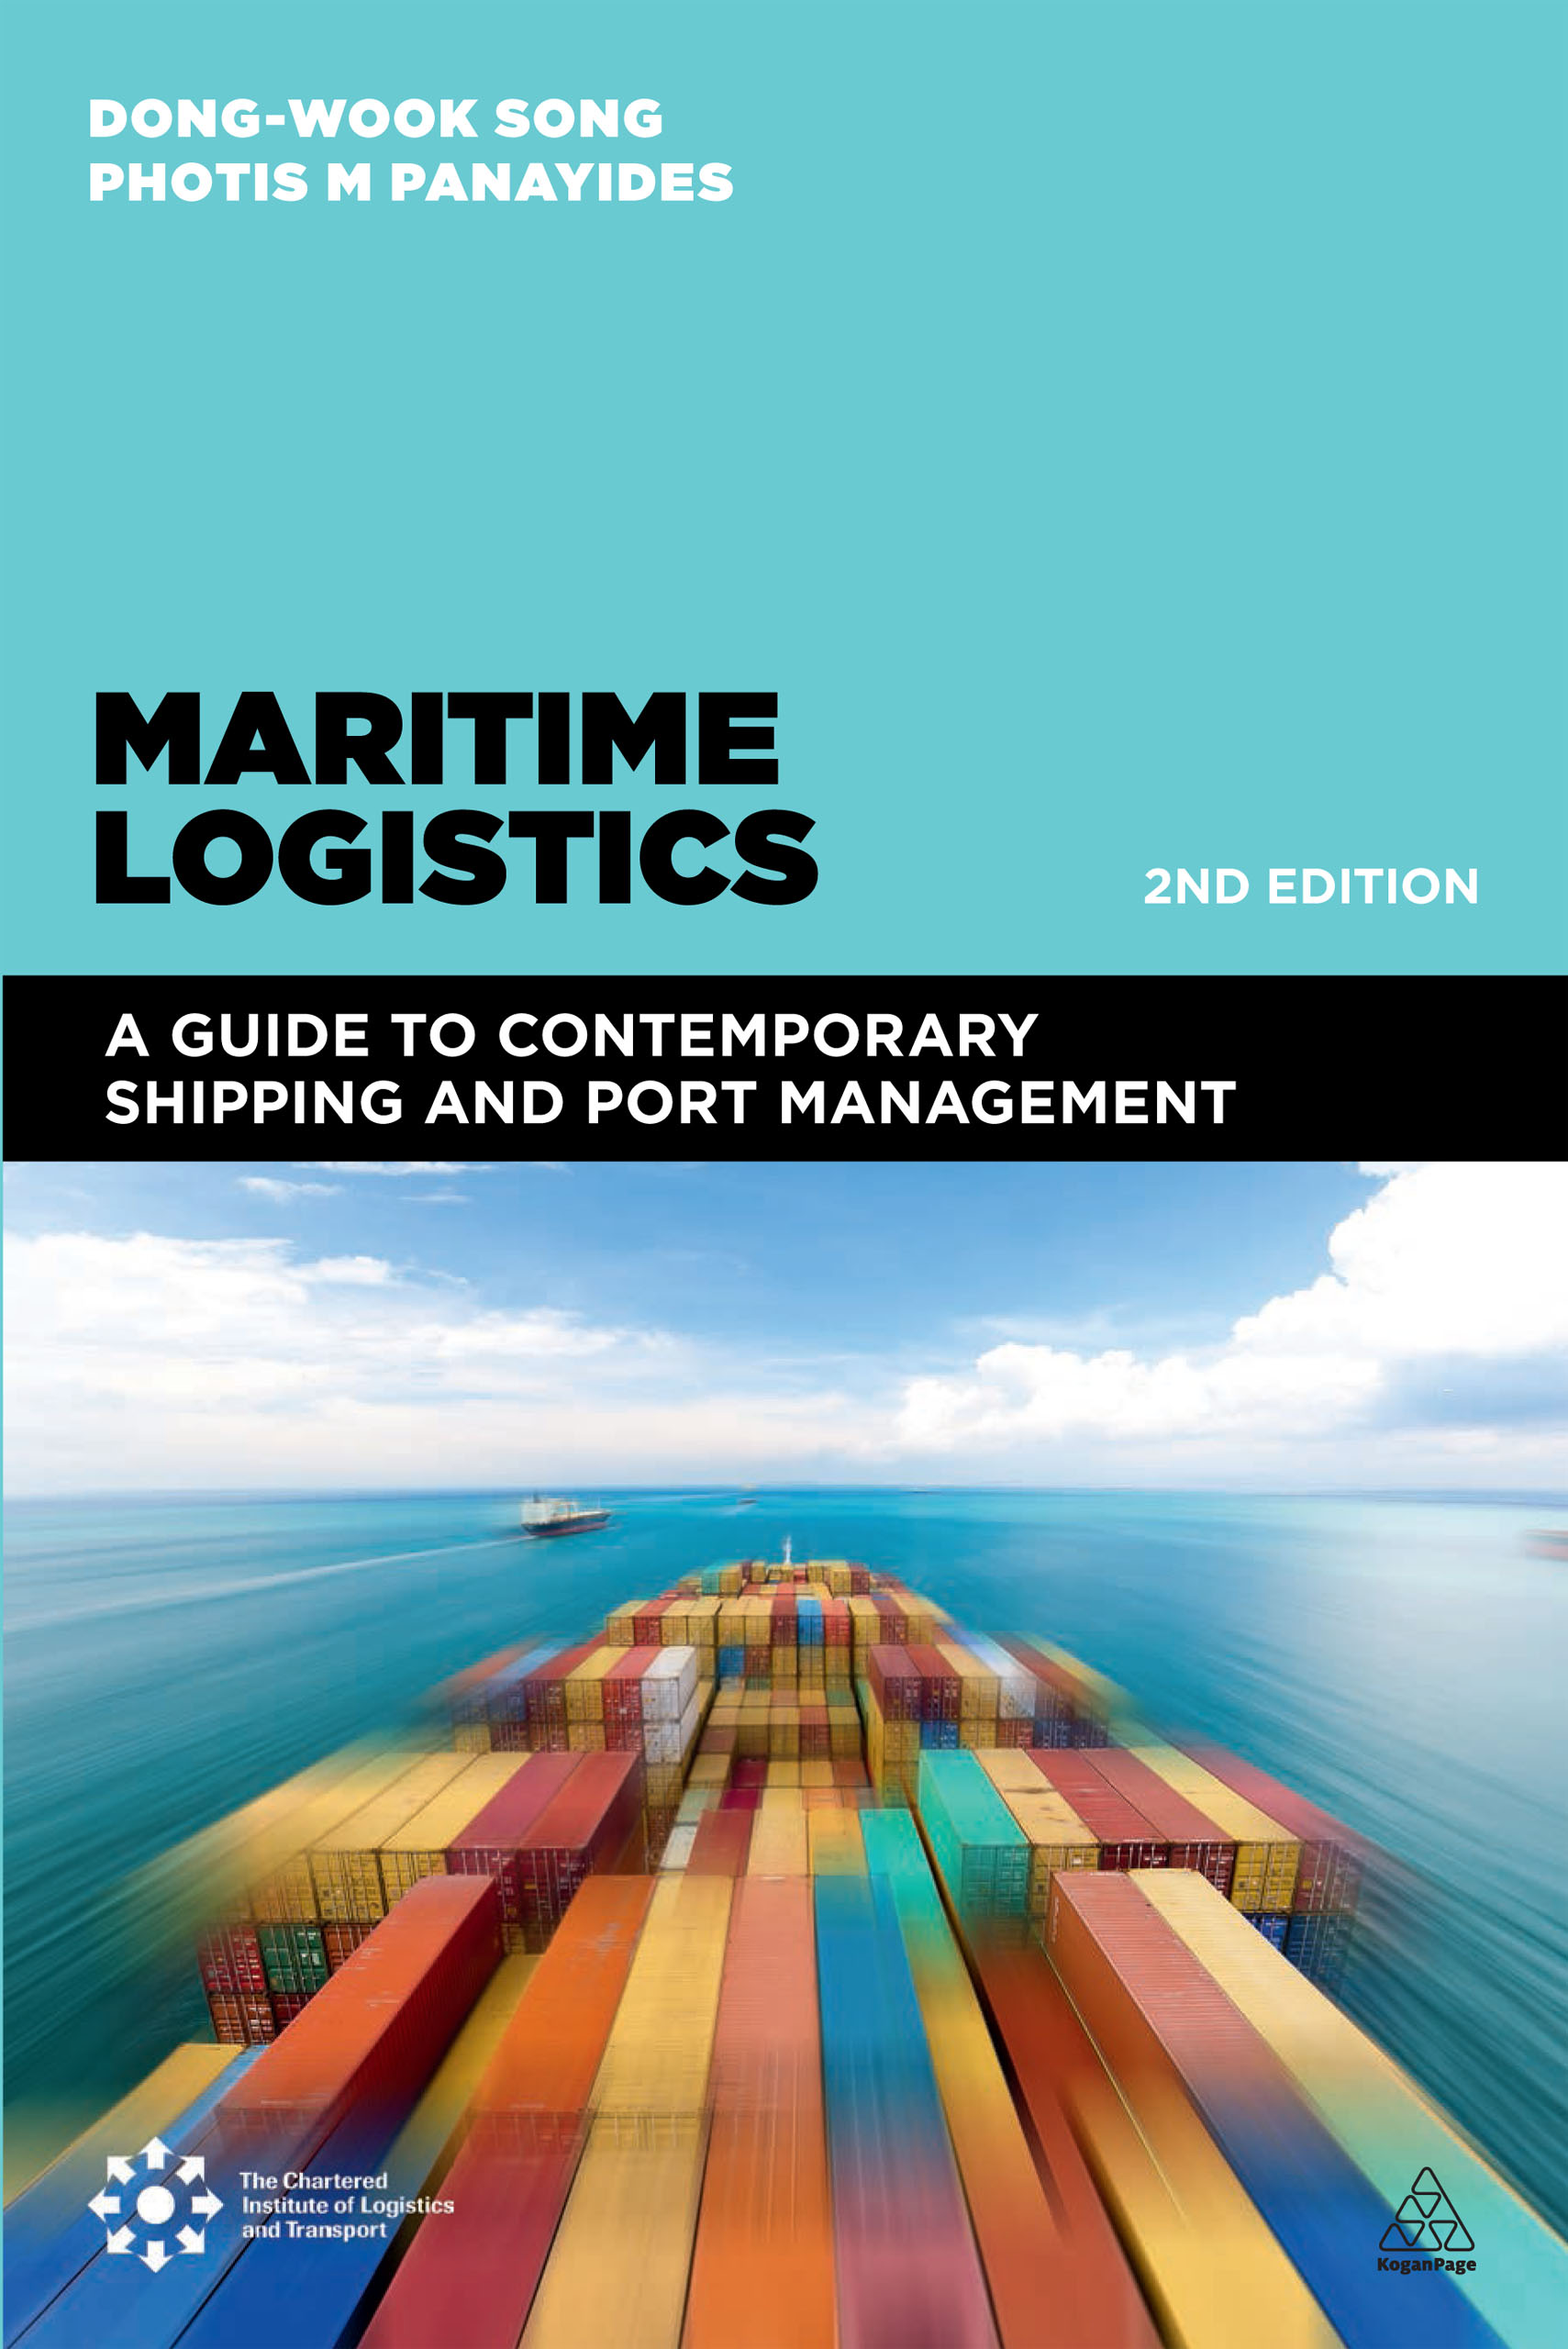 Download Ebook Maritime Logistics (2nd ed.) by Photis Panayides Pdf